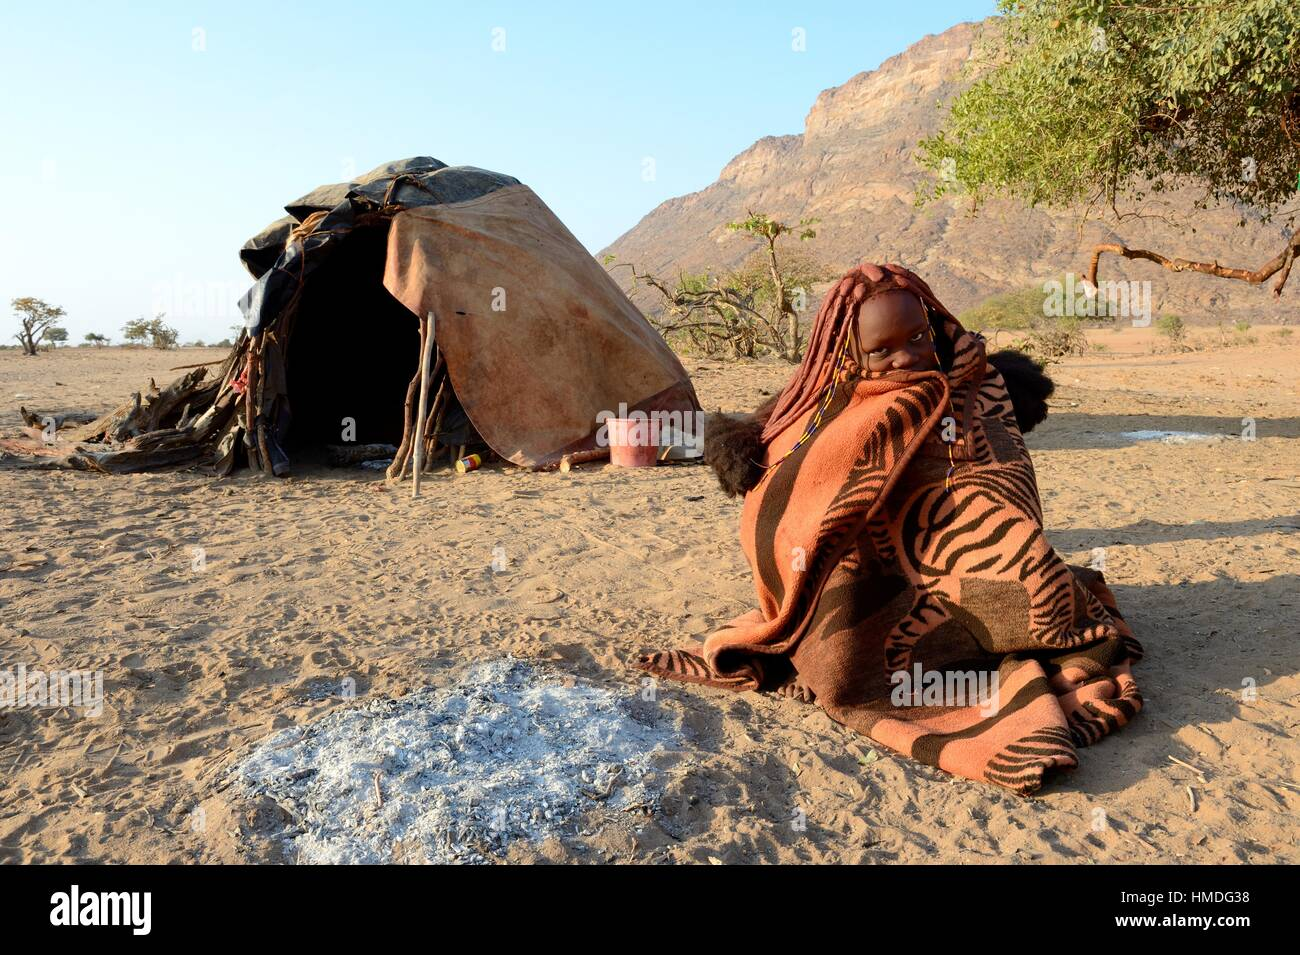 Himba woman early morning wrapped up in a blanket next to her open fireplace with her mud hut in the background. - Stock Image